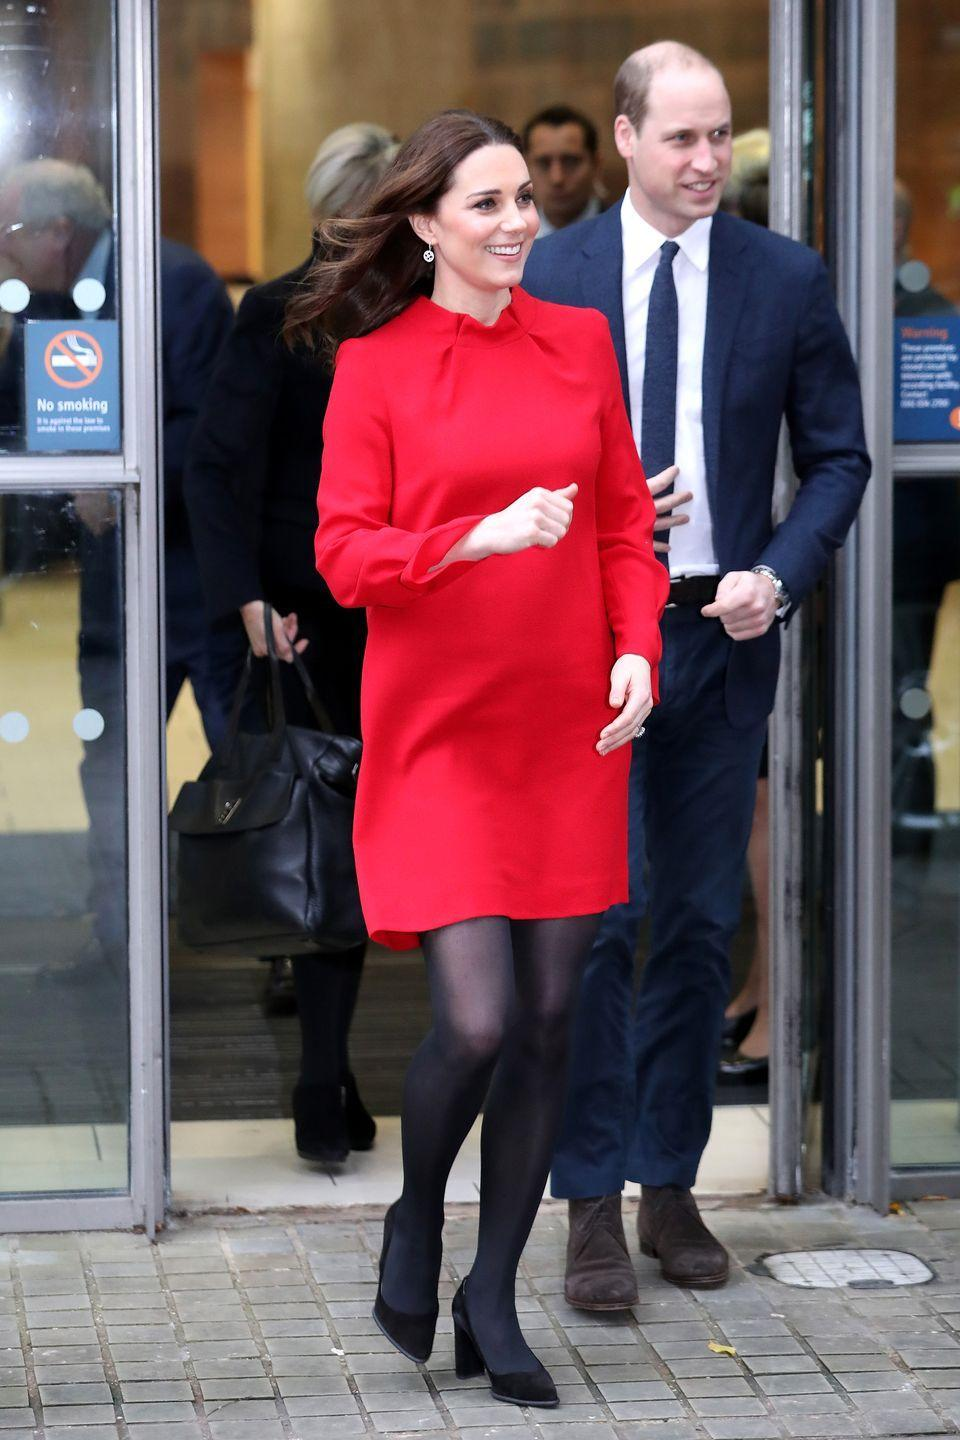 <p>The Duchess wears a red long-sleeved dress by Goat Fashion, black tights, and black pumps with Prince William at the Manchester Central Convention Complex.</p>